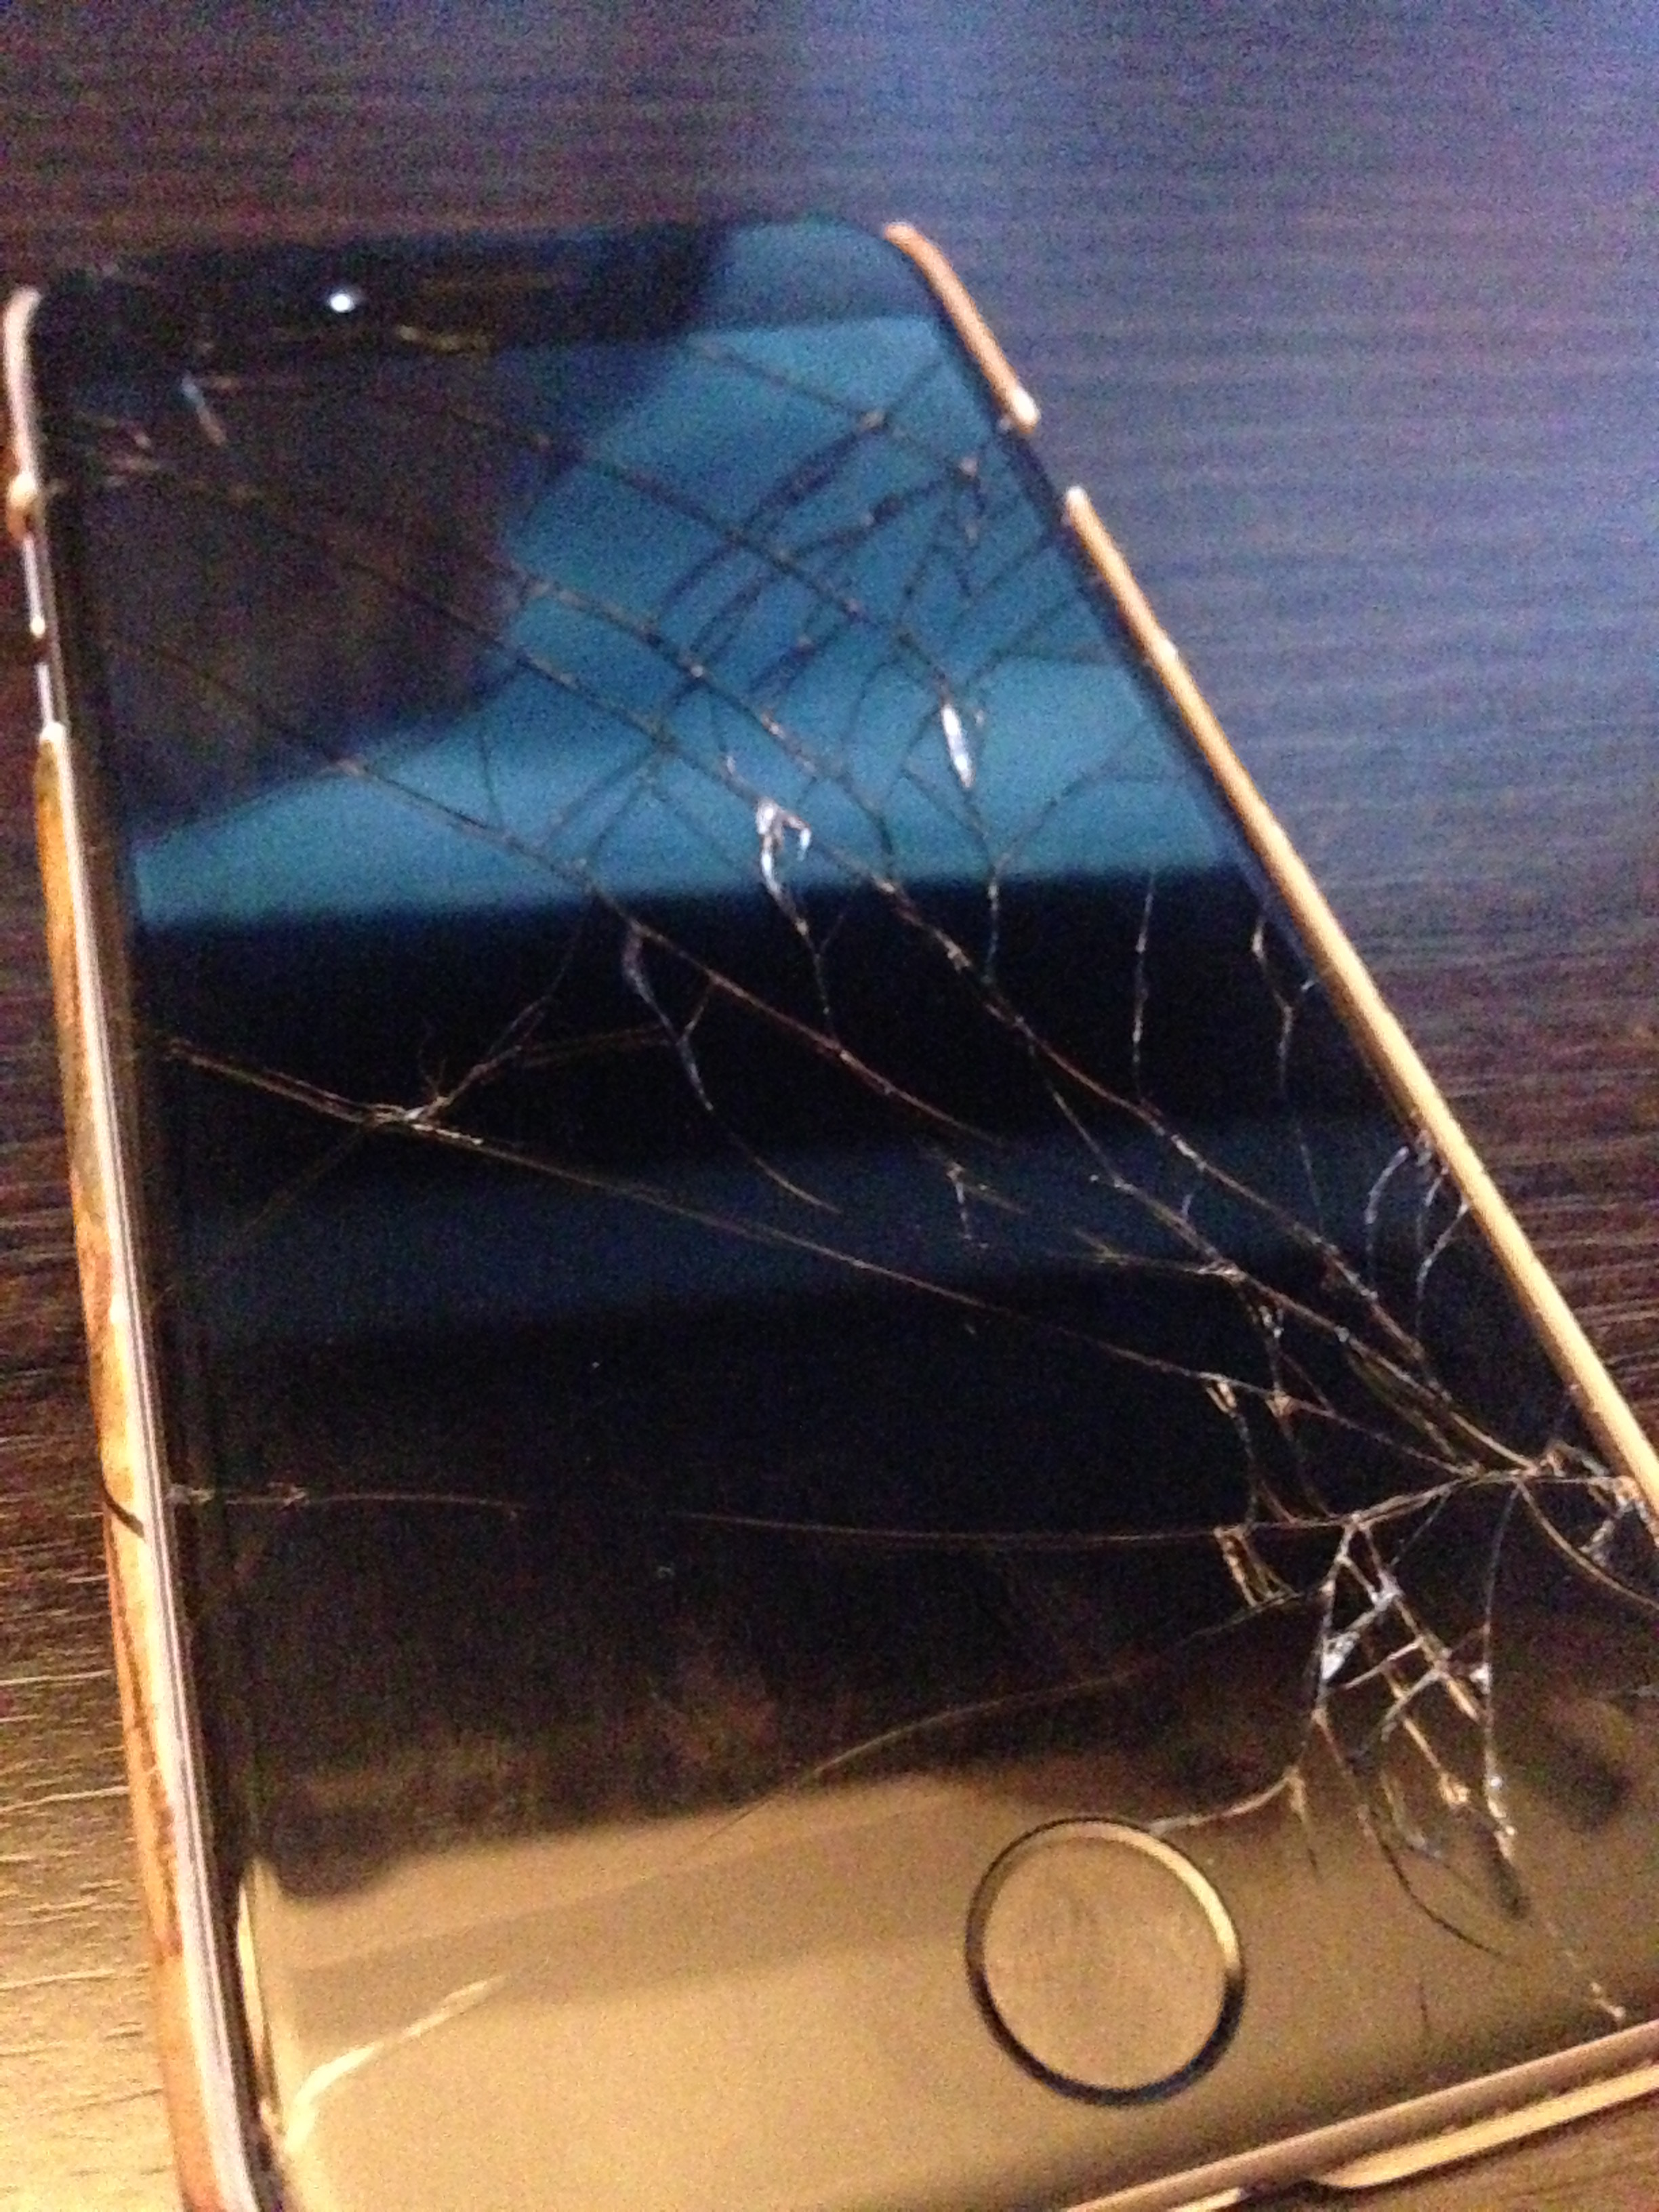 Broken iPhone 6 Needs A Little TLC in Dubai!